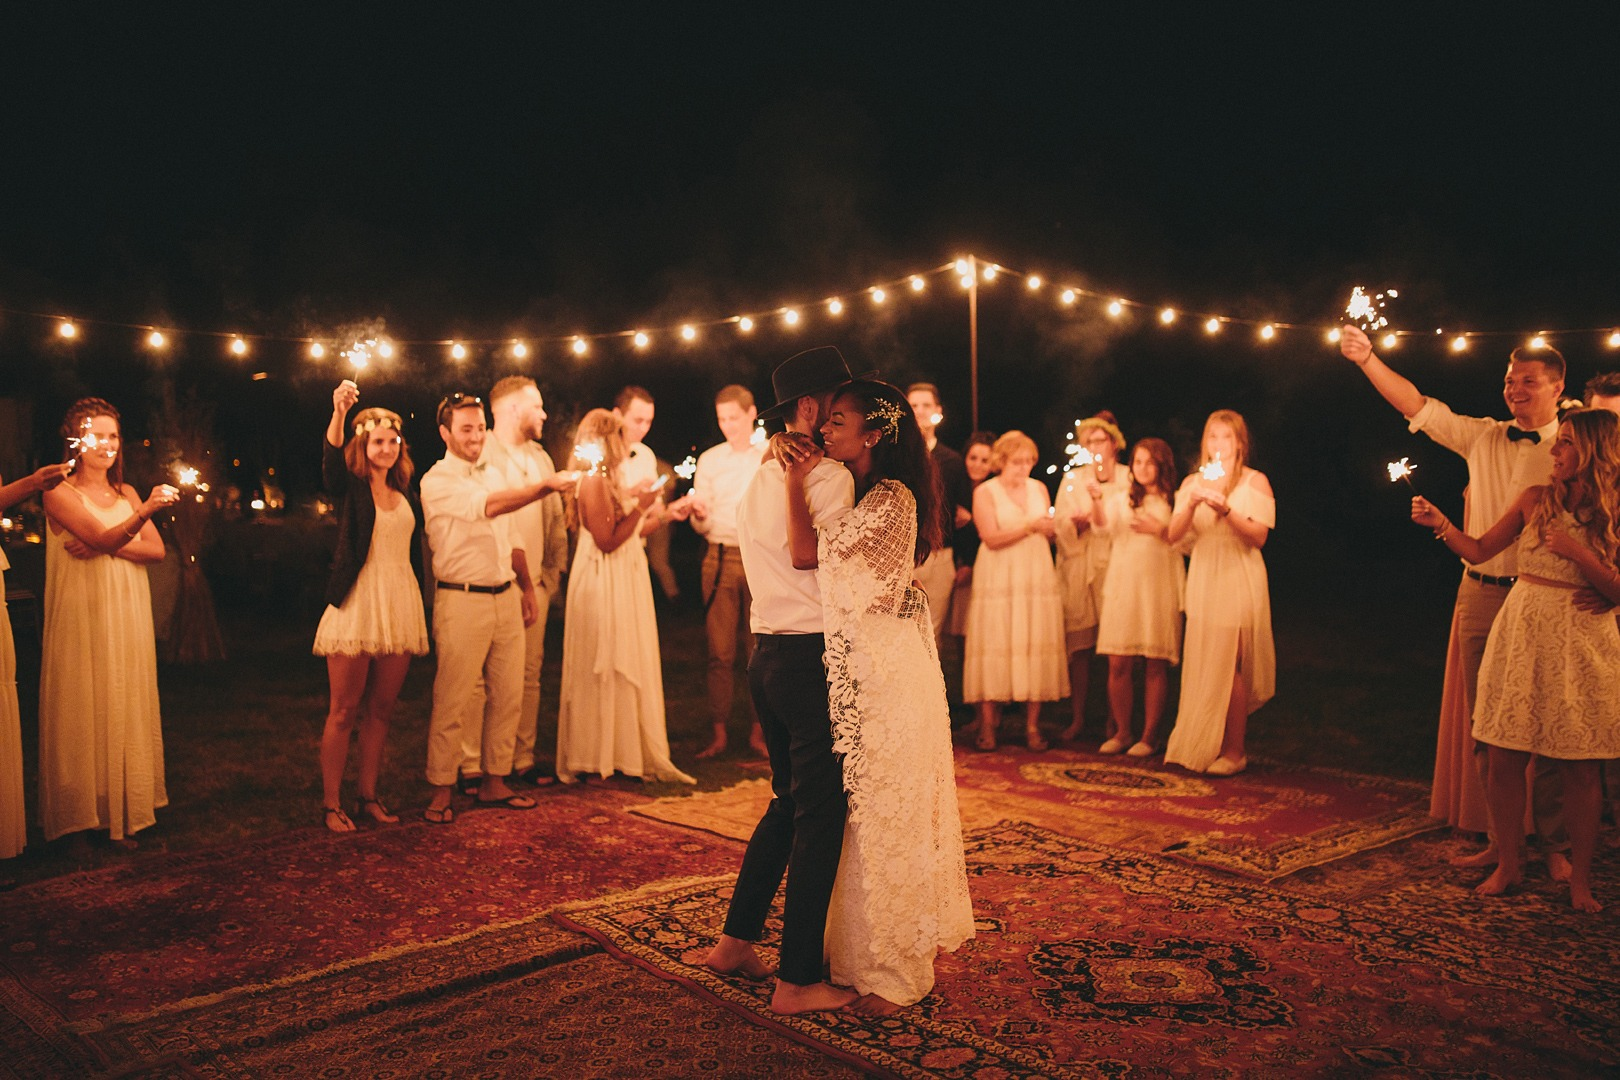 bohemian unique wedding ideas for dance floor